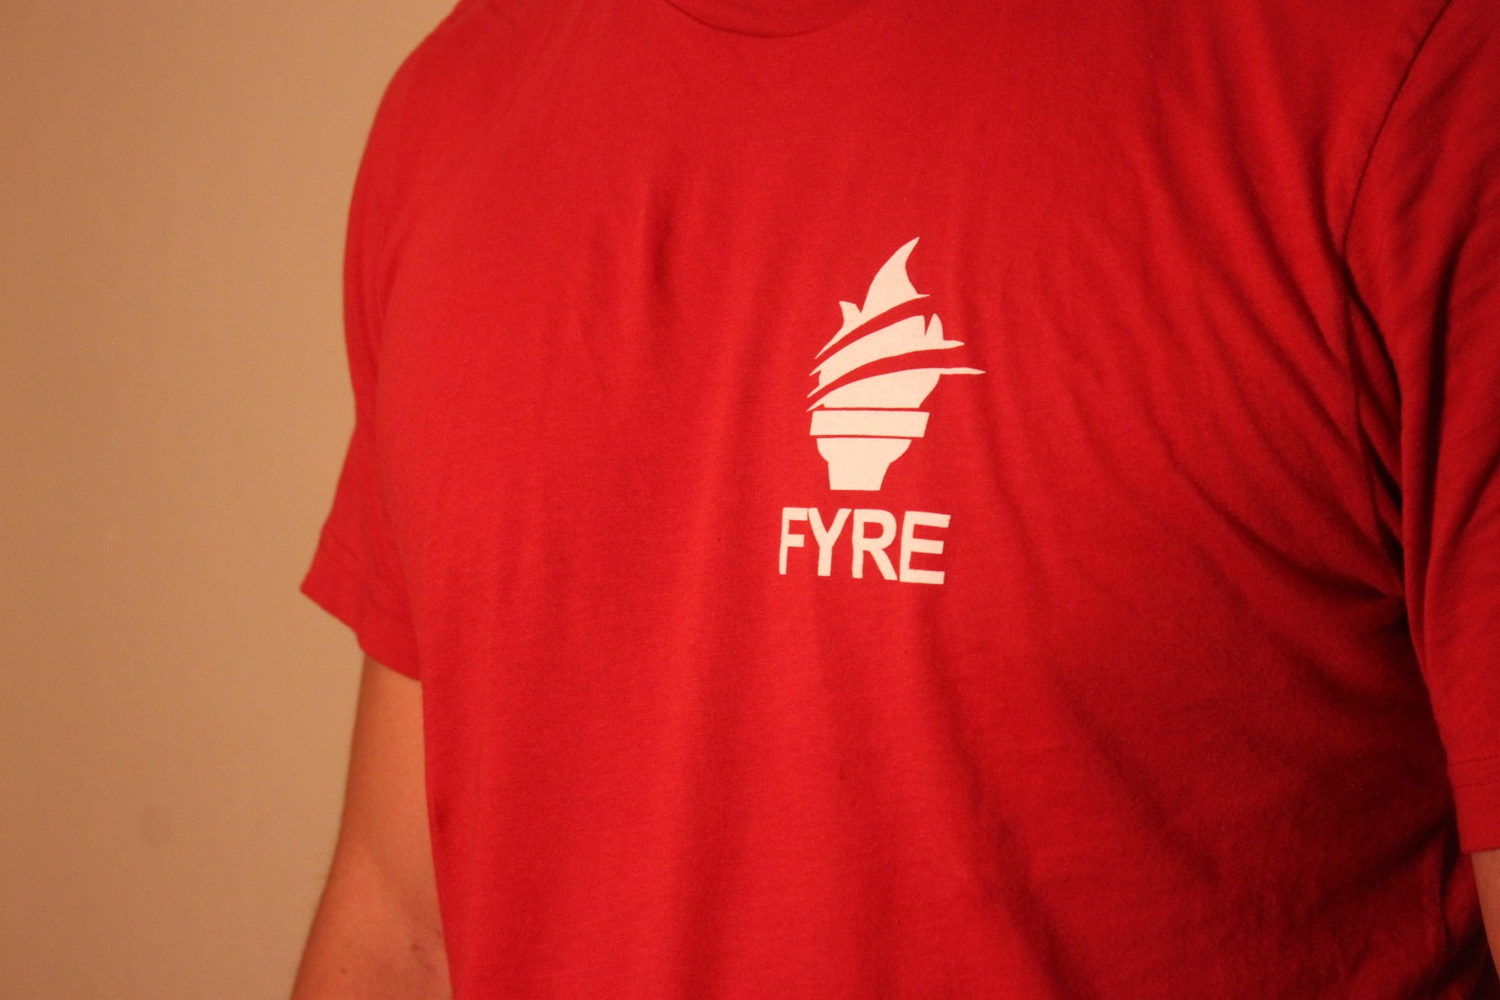 A student poses wearing a FYRE t-shirt.